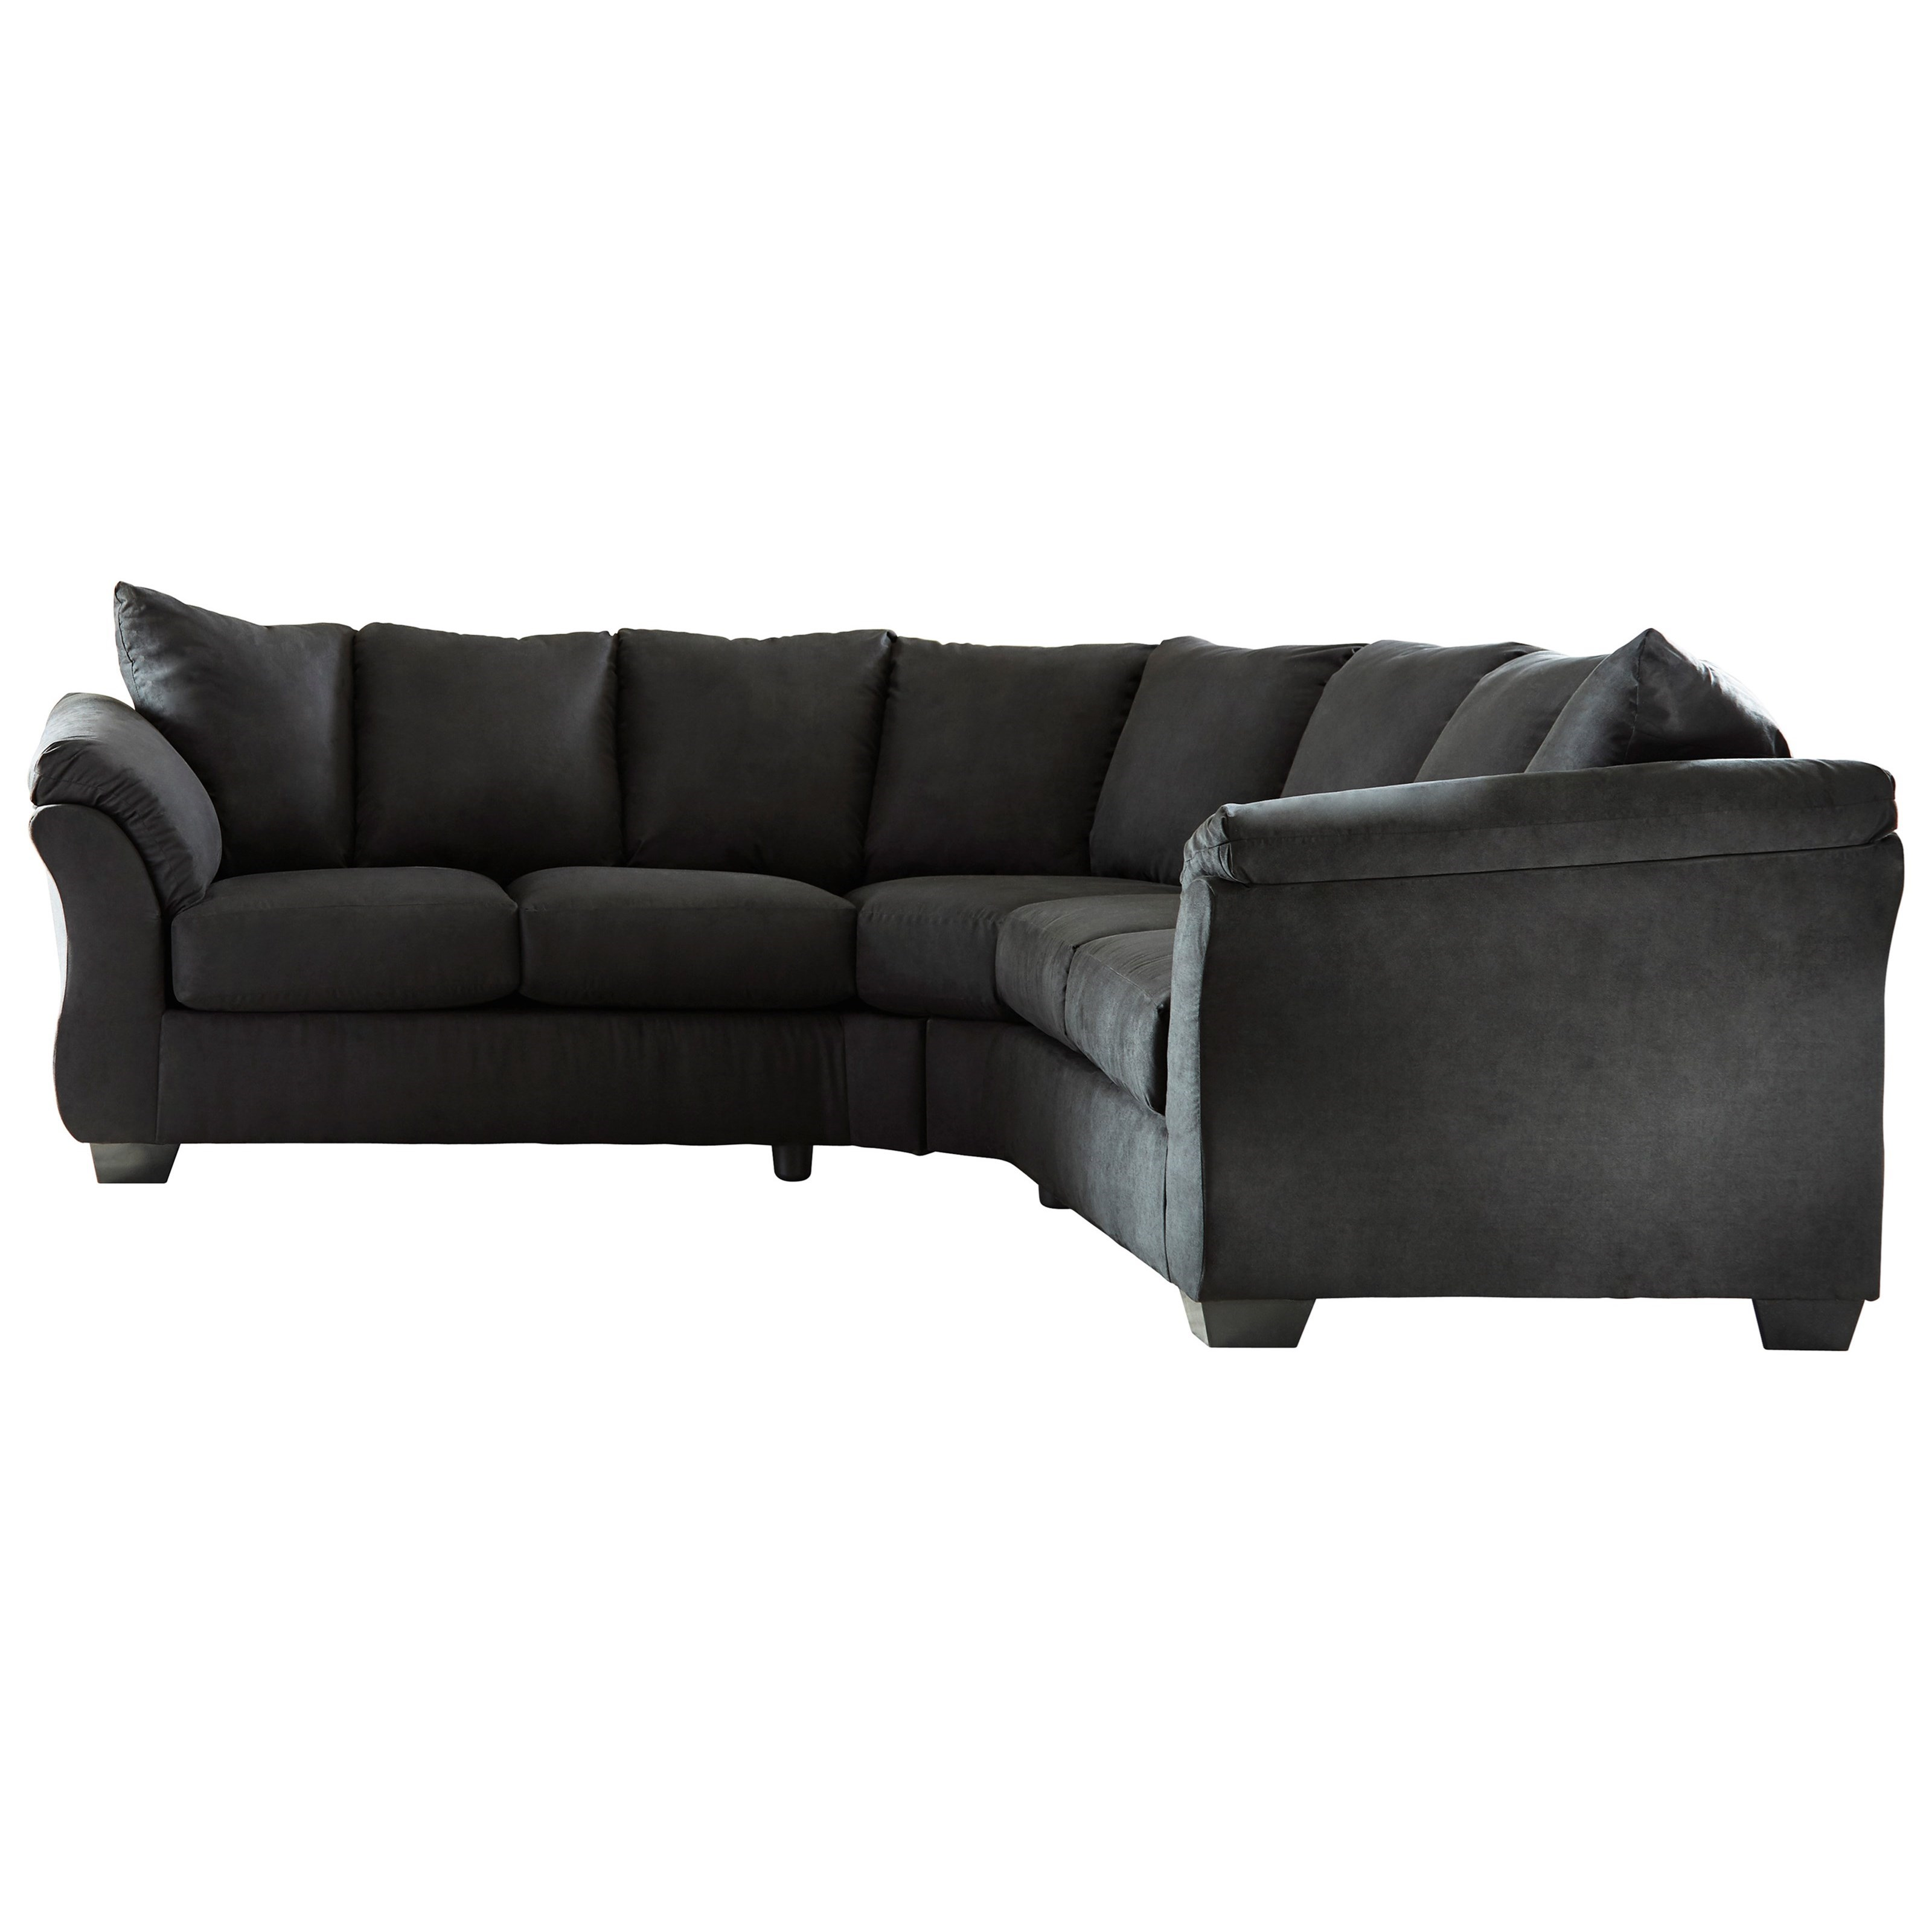 sofa for sets leftchaise clubber zuri furniture living room modern blackbrown black sectional cheap